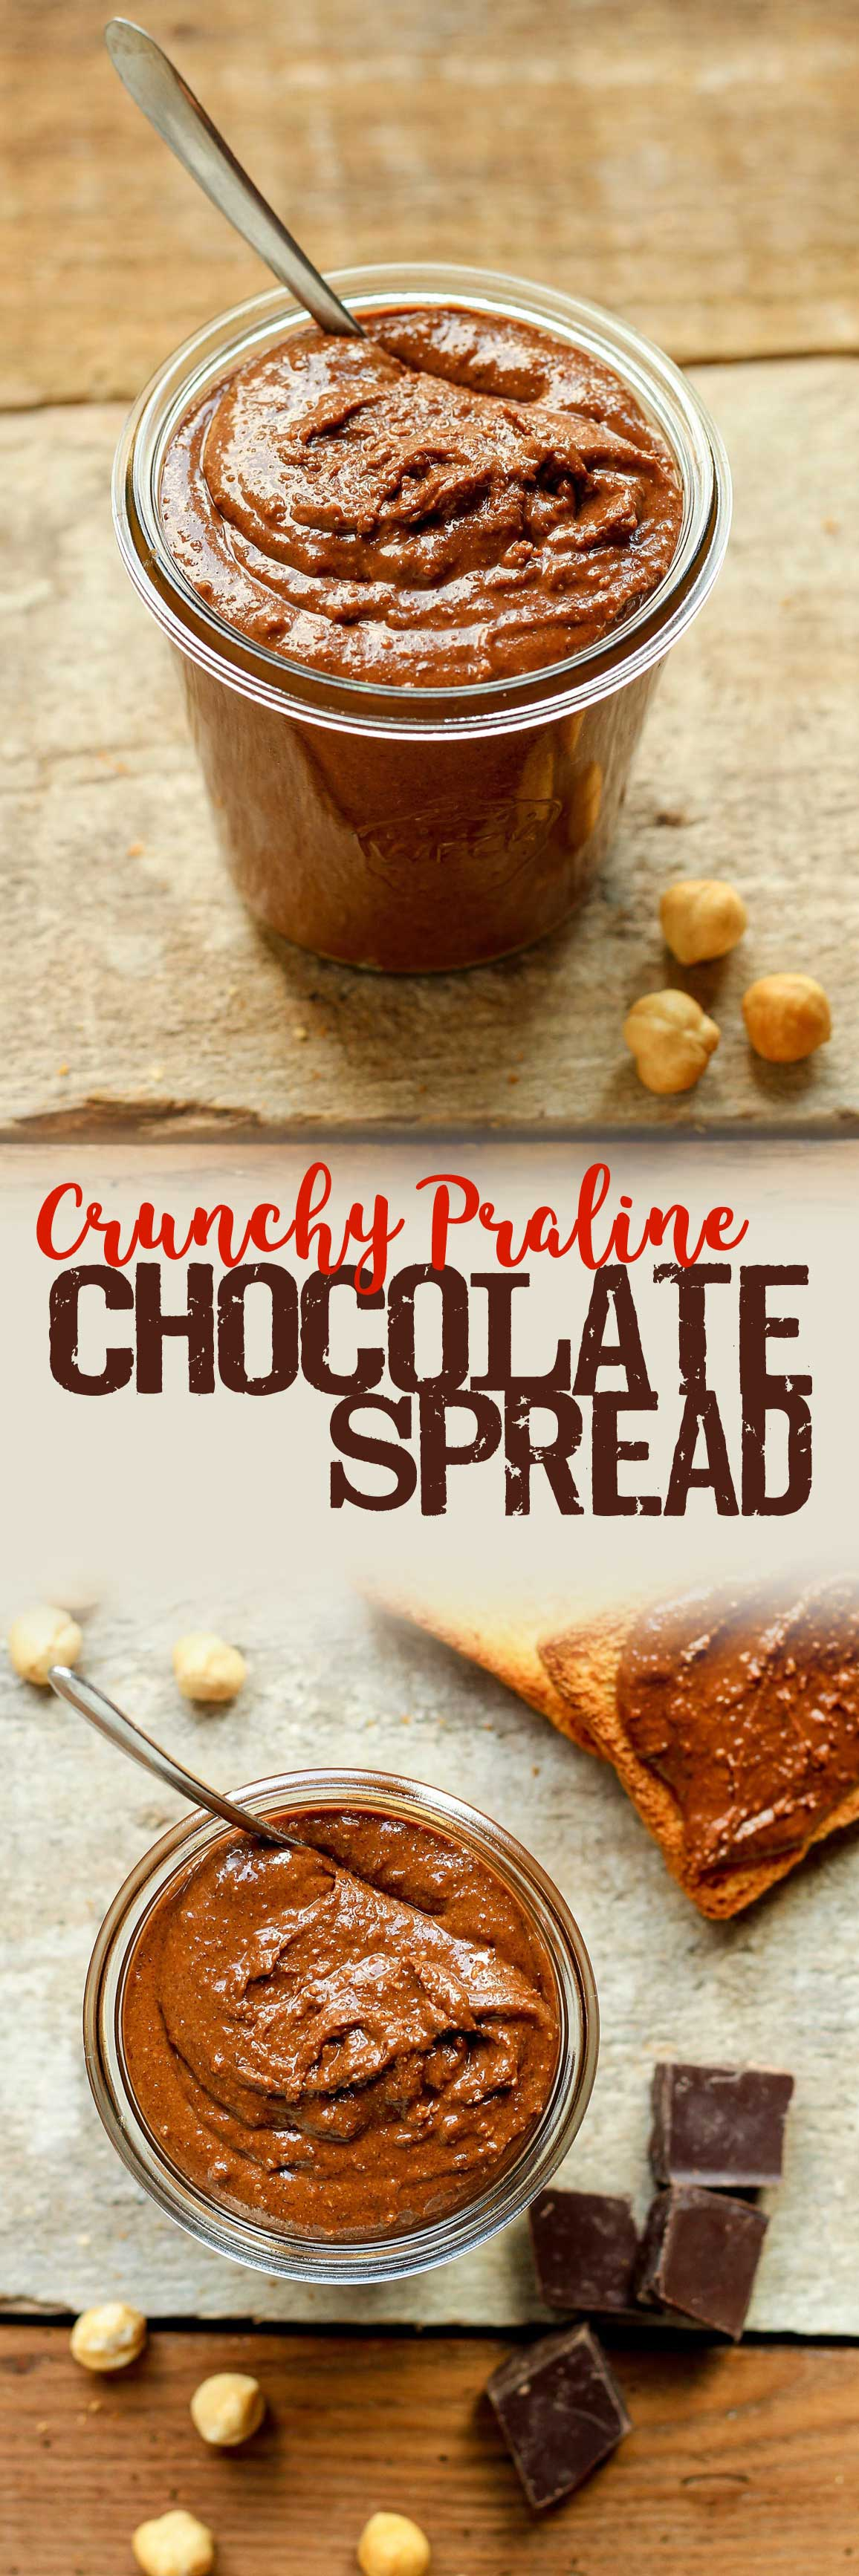 Crunchy Praline Chocolate Spread